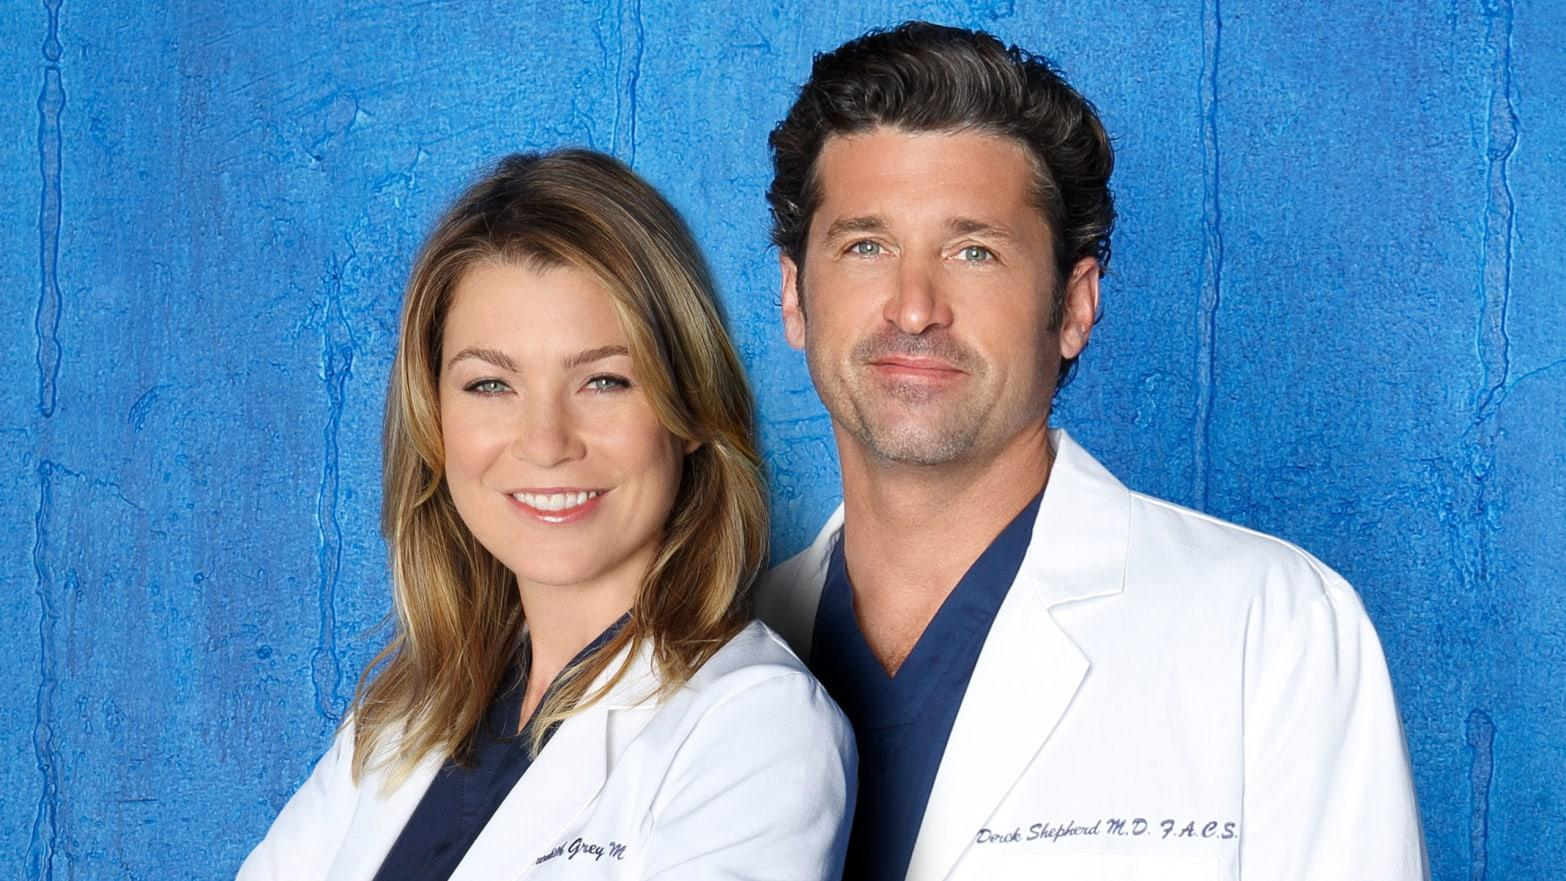 Ellen Pompeo Reveals She Nearly Left Grey's Anatomy After Learning Patrick Dempsey Was Getting Almost Twice Her Salary